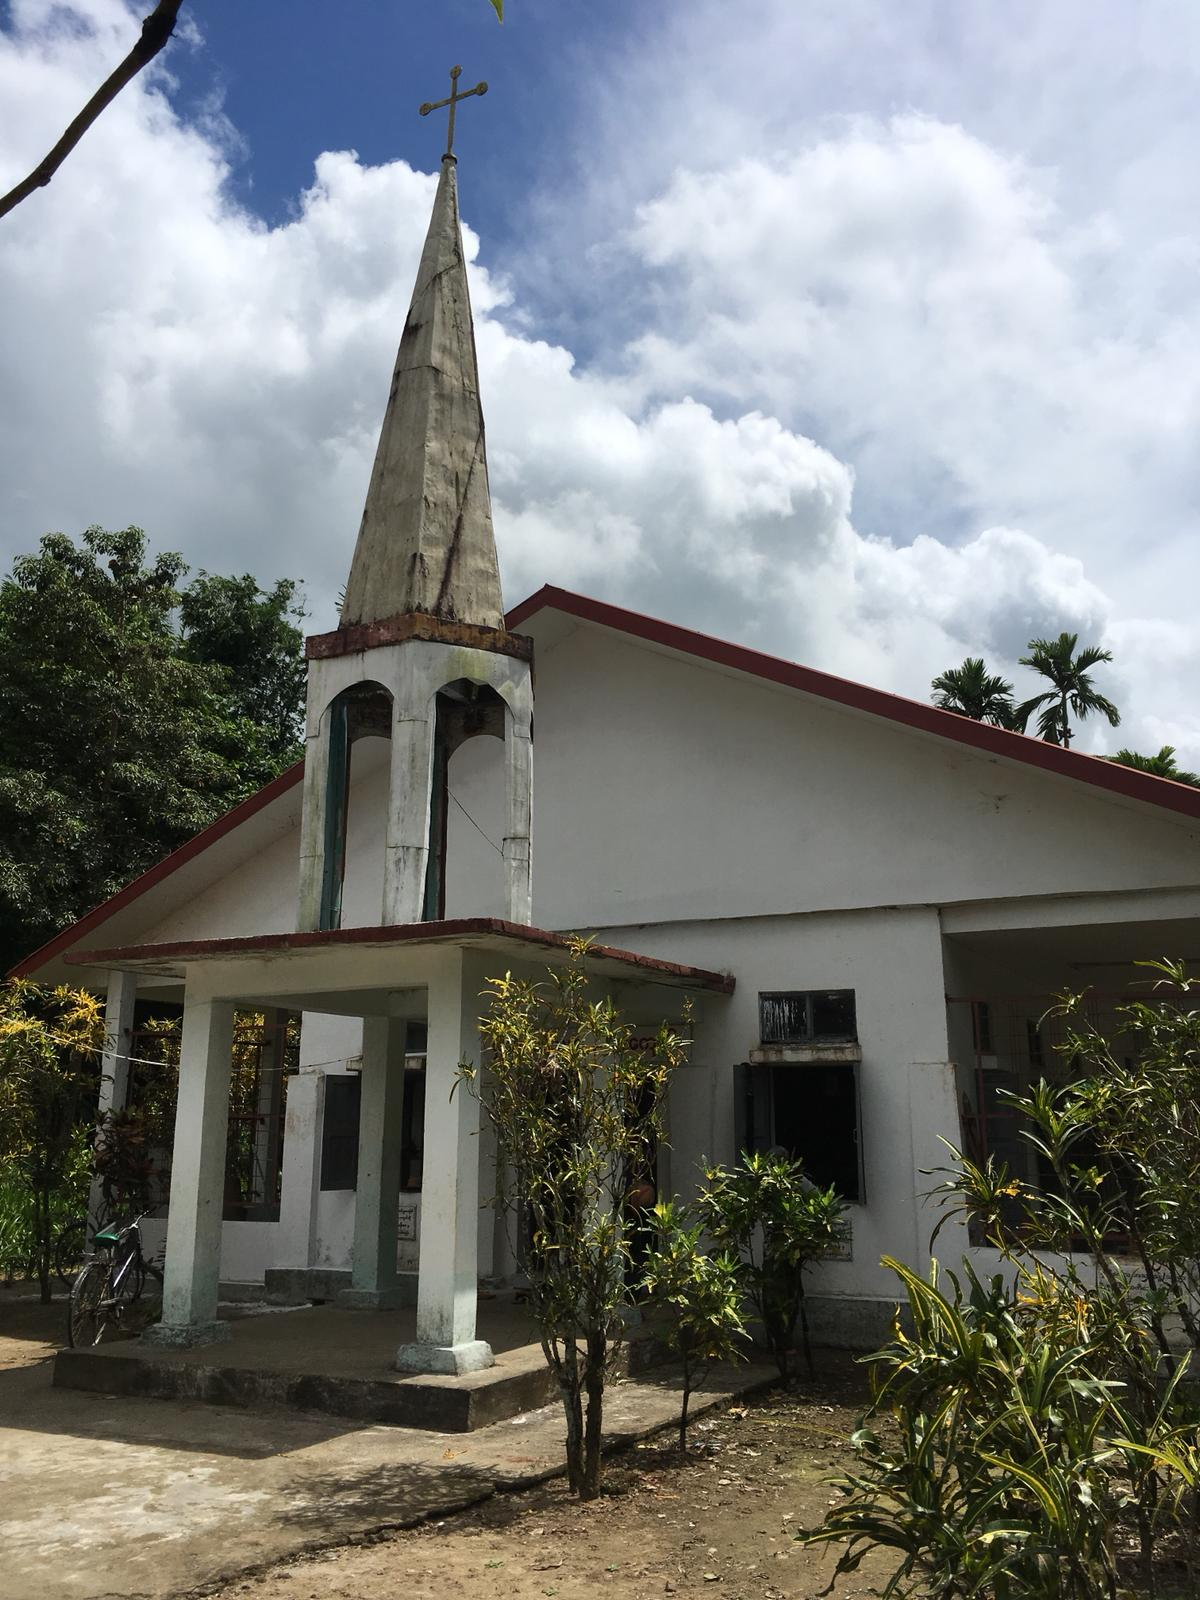 Christianity is practiced by only about 6% of the population of Myanmar. Churches like this one are used for worship services as well as centers for community gathering.